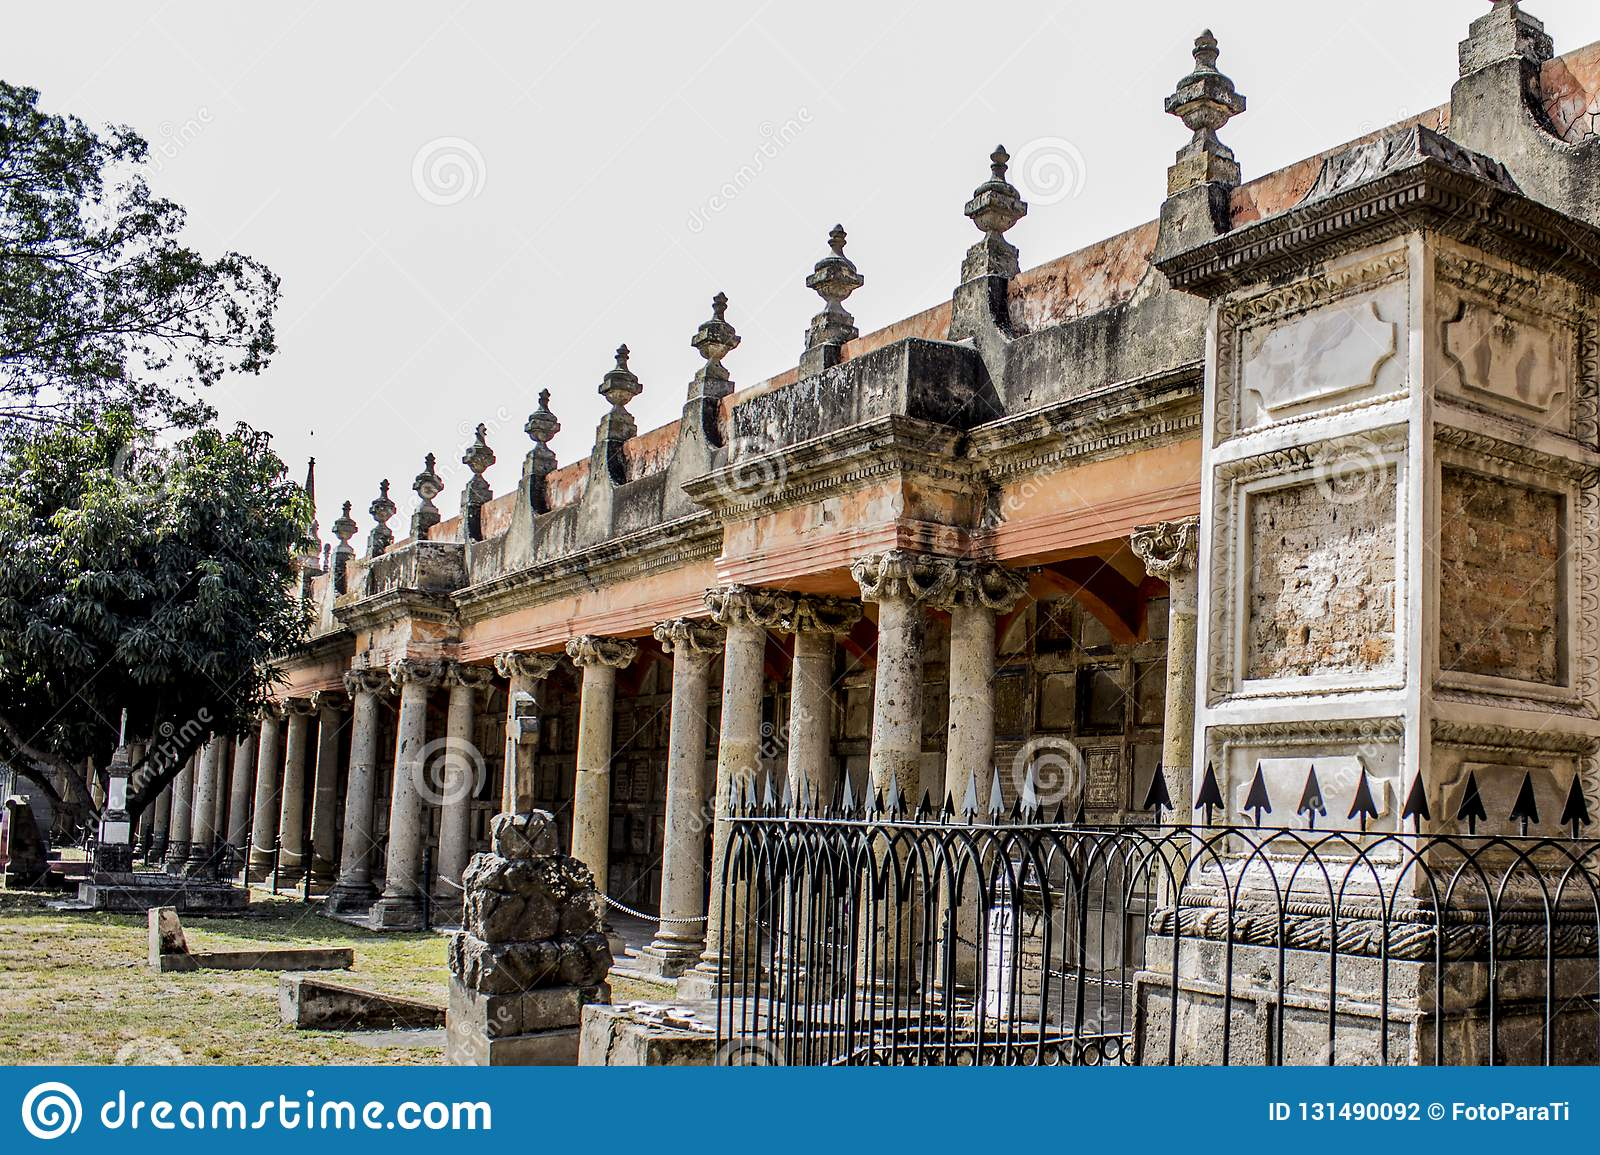 Awesome view of a tombs of the cemetery of Belen in Guadalajara